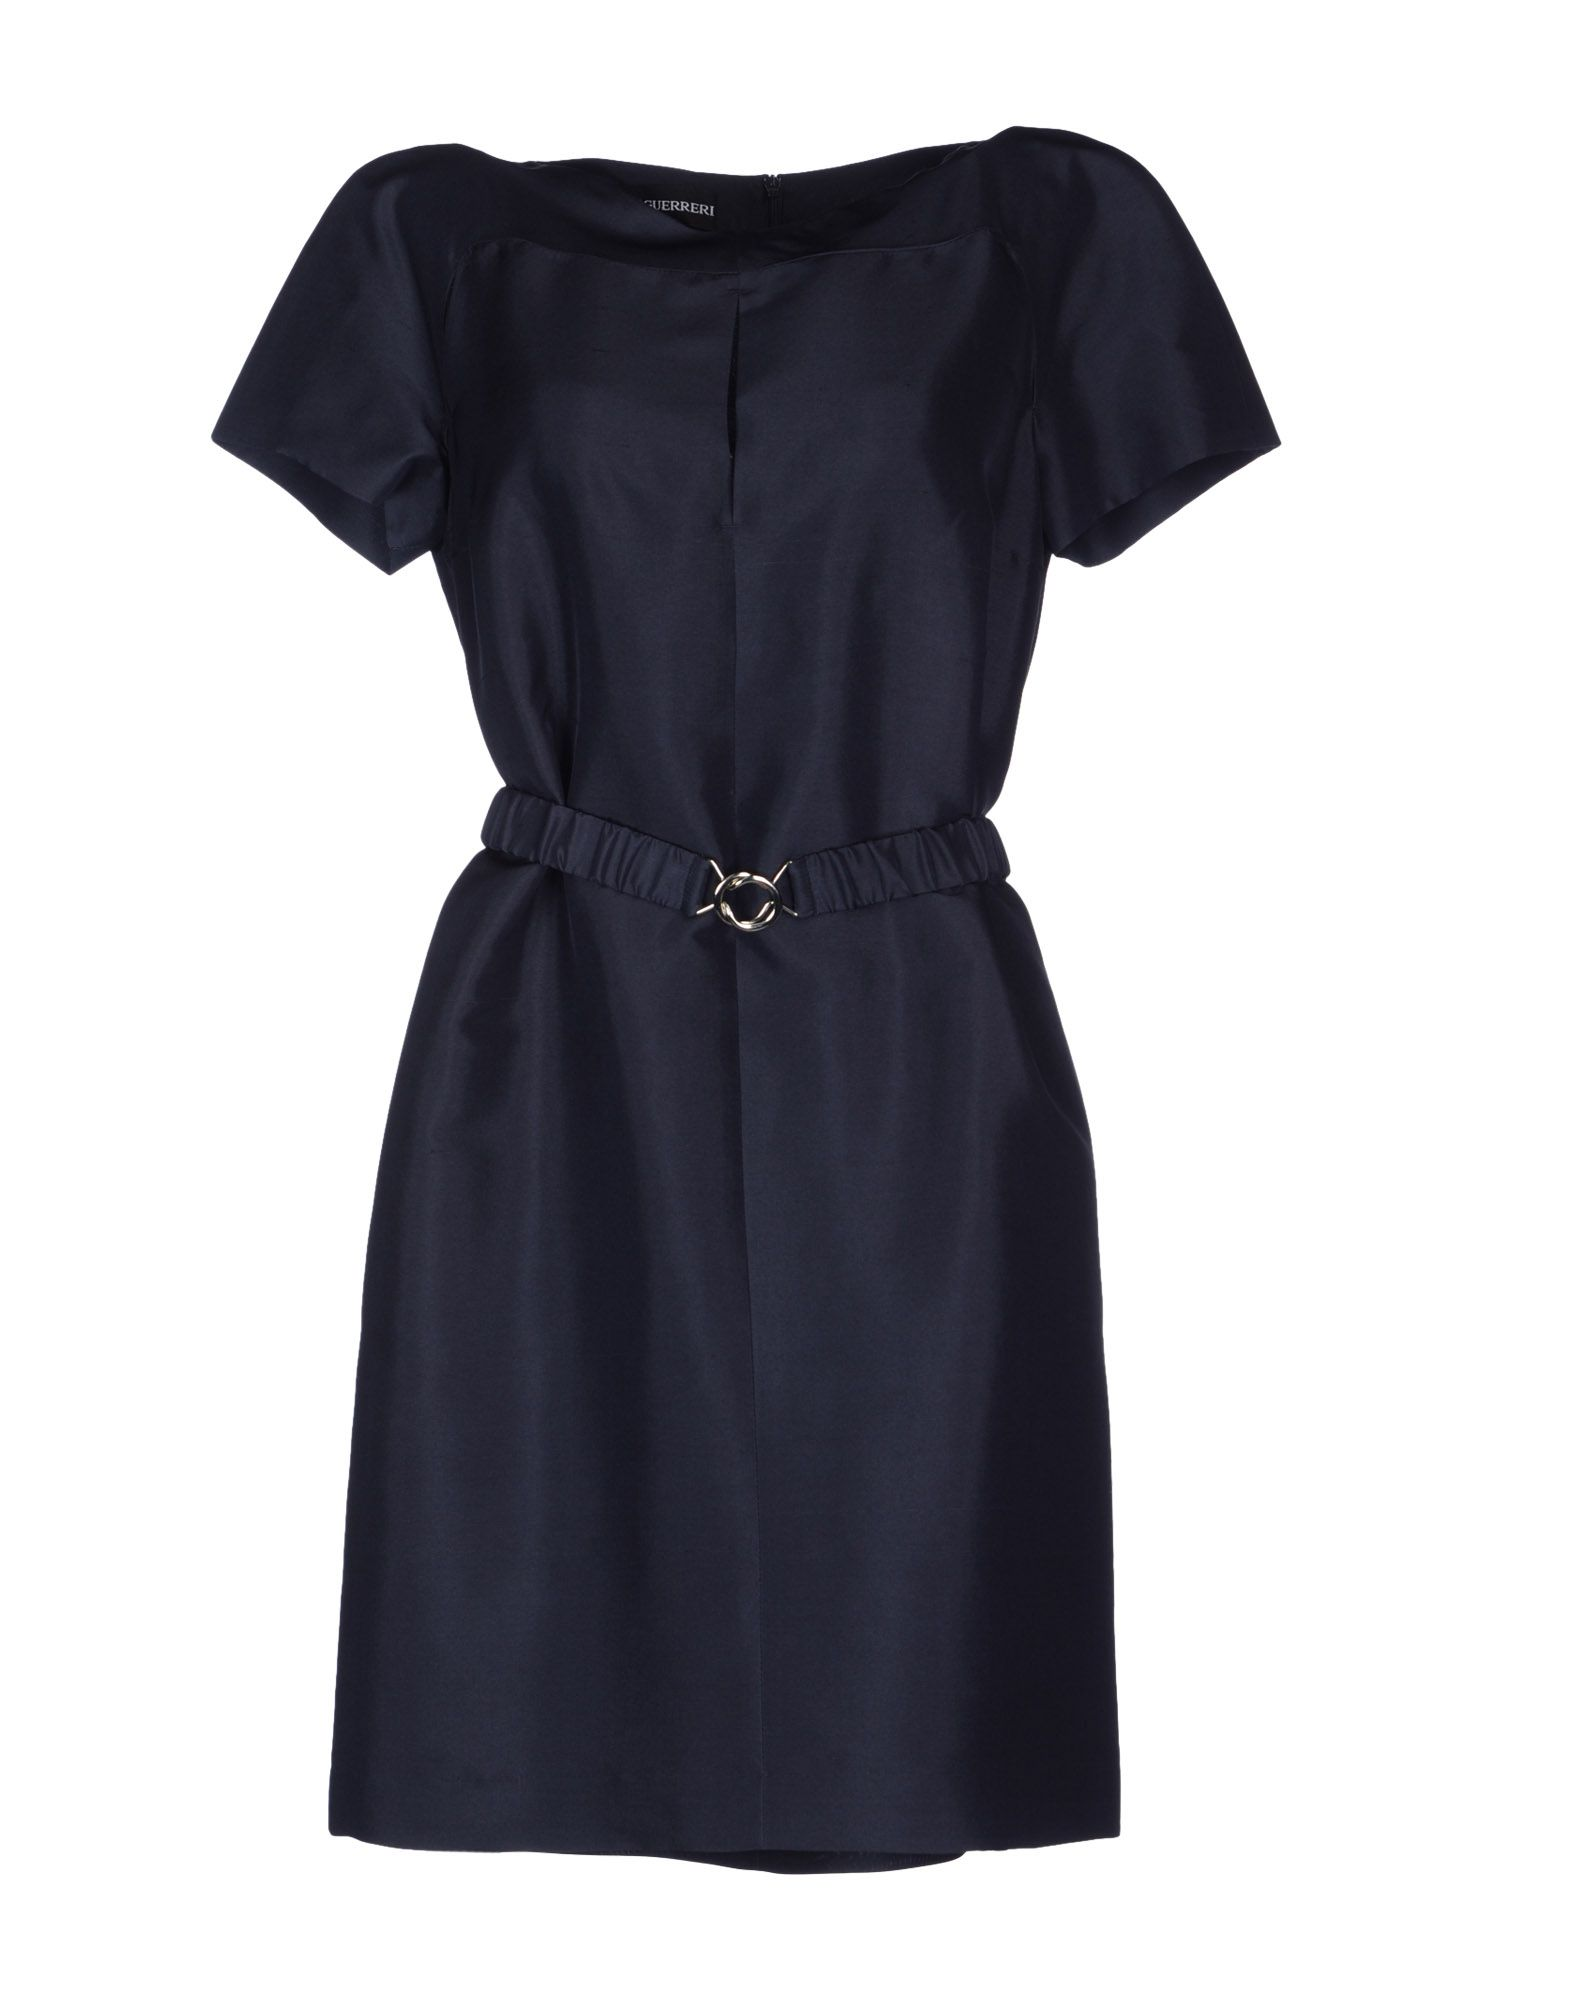 GIO' GUERRERI Short Dress in Dark Blue